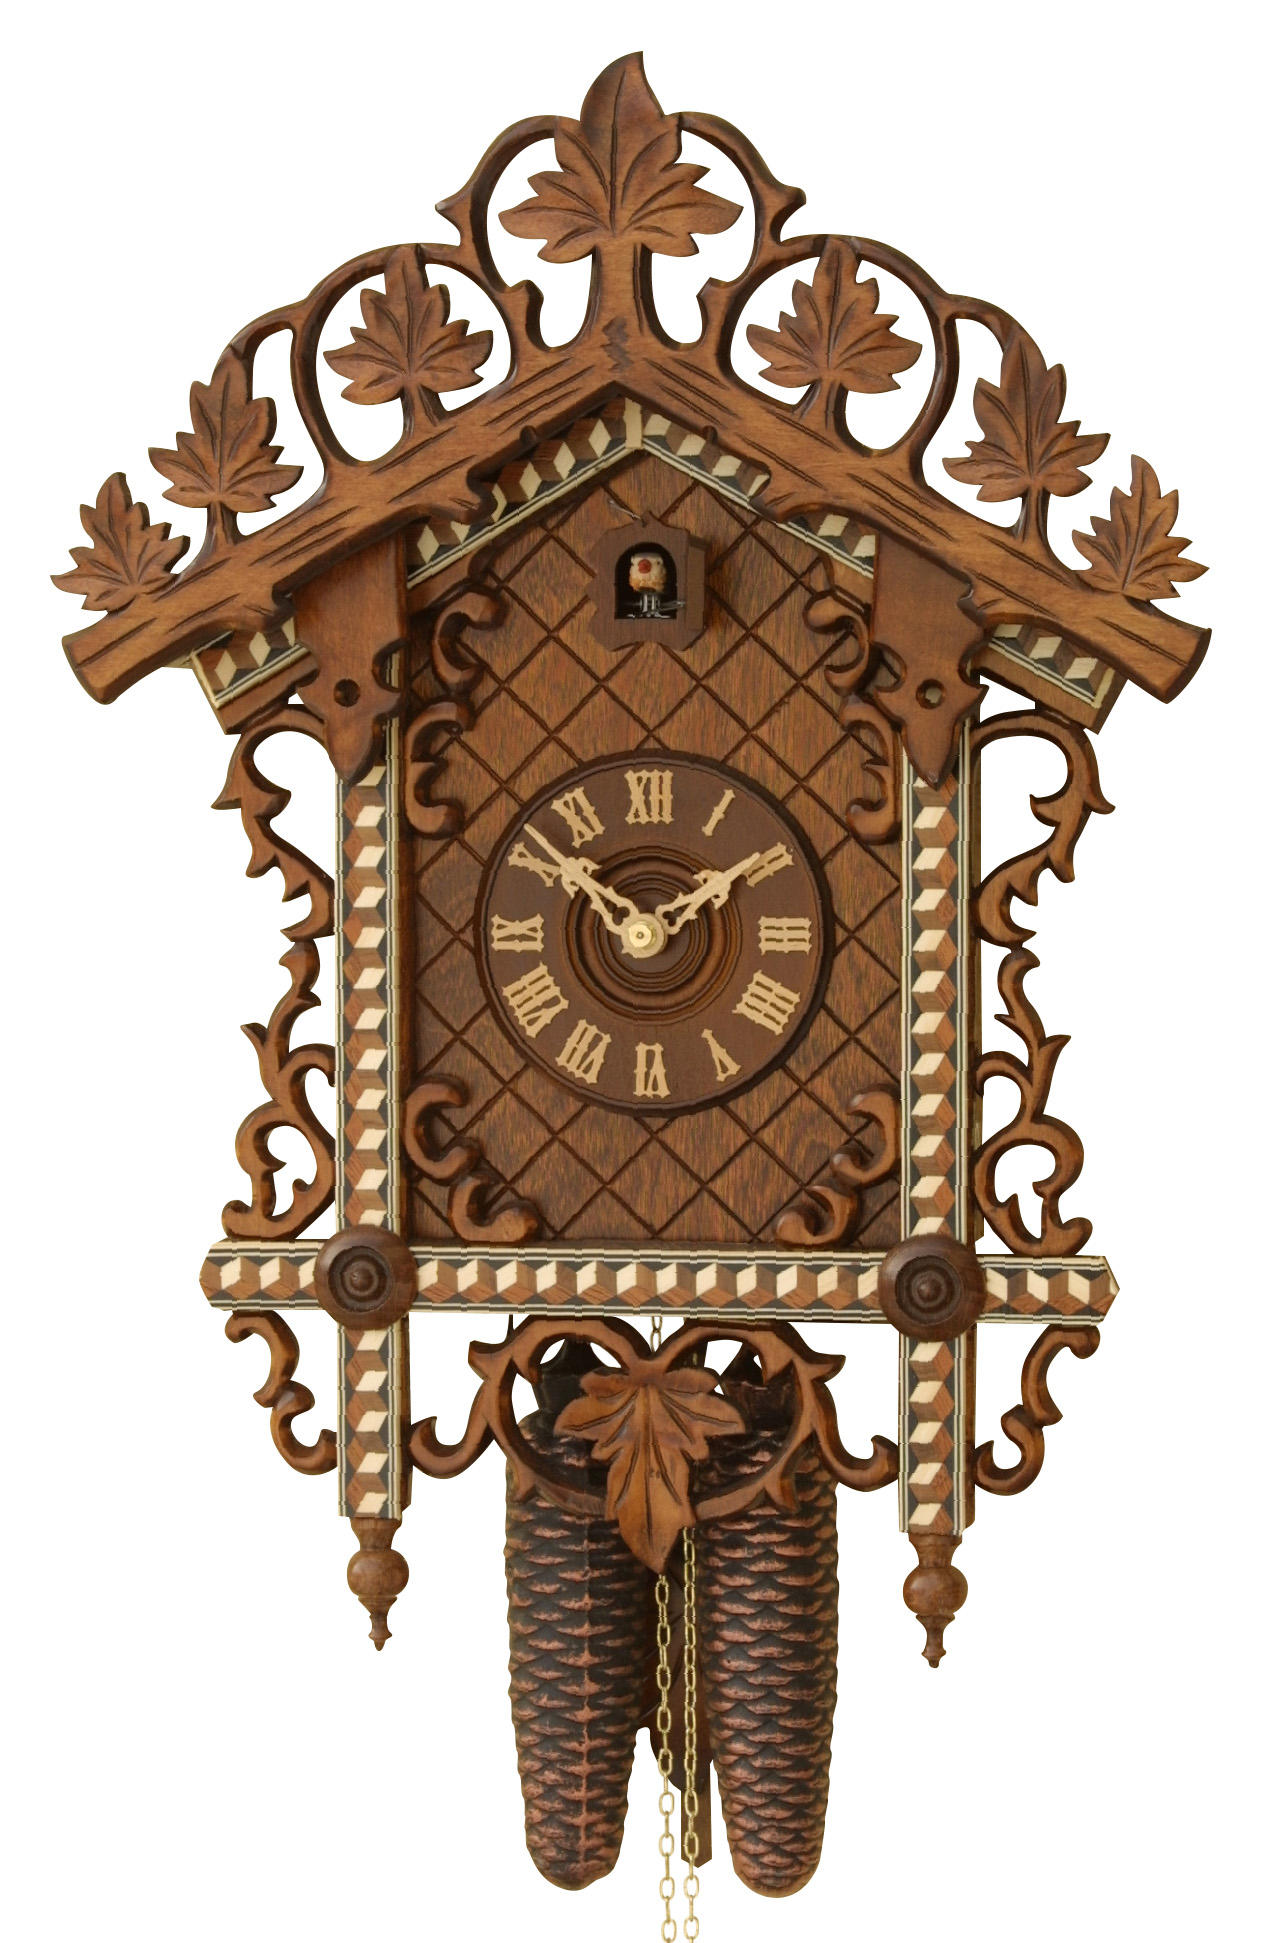 Cuckoo clock cuckoo clocks blog How to make a cuckoo clock